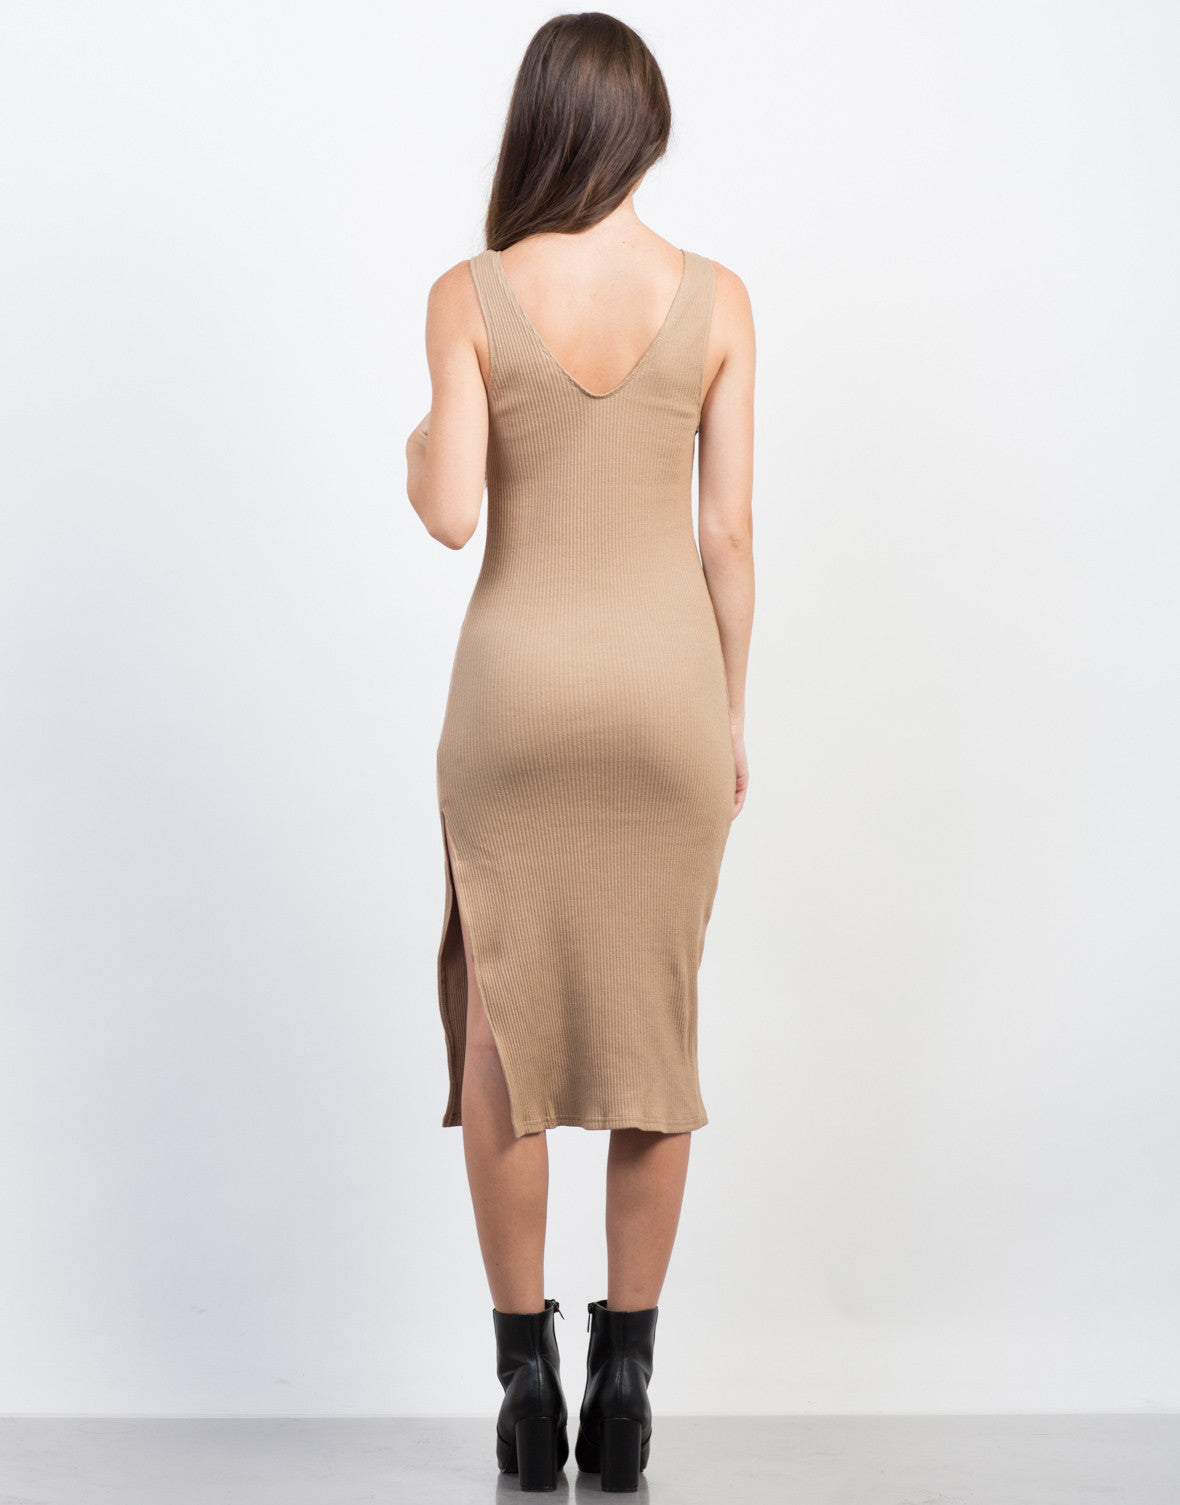 Back View of Peekaboo Midi Dress